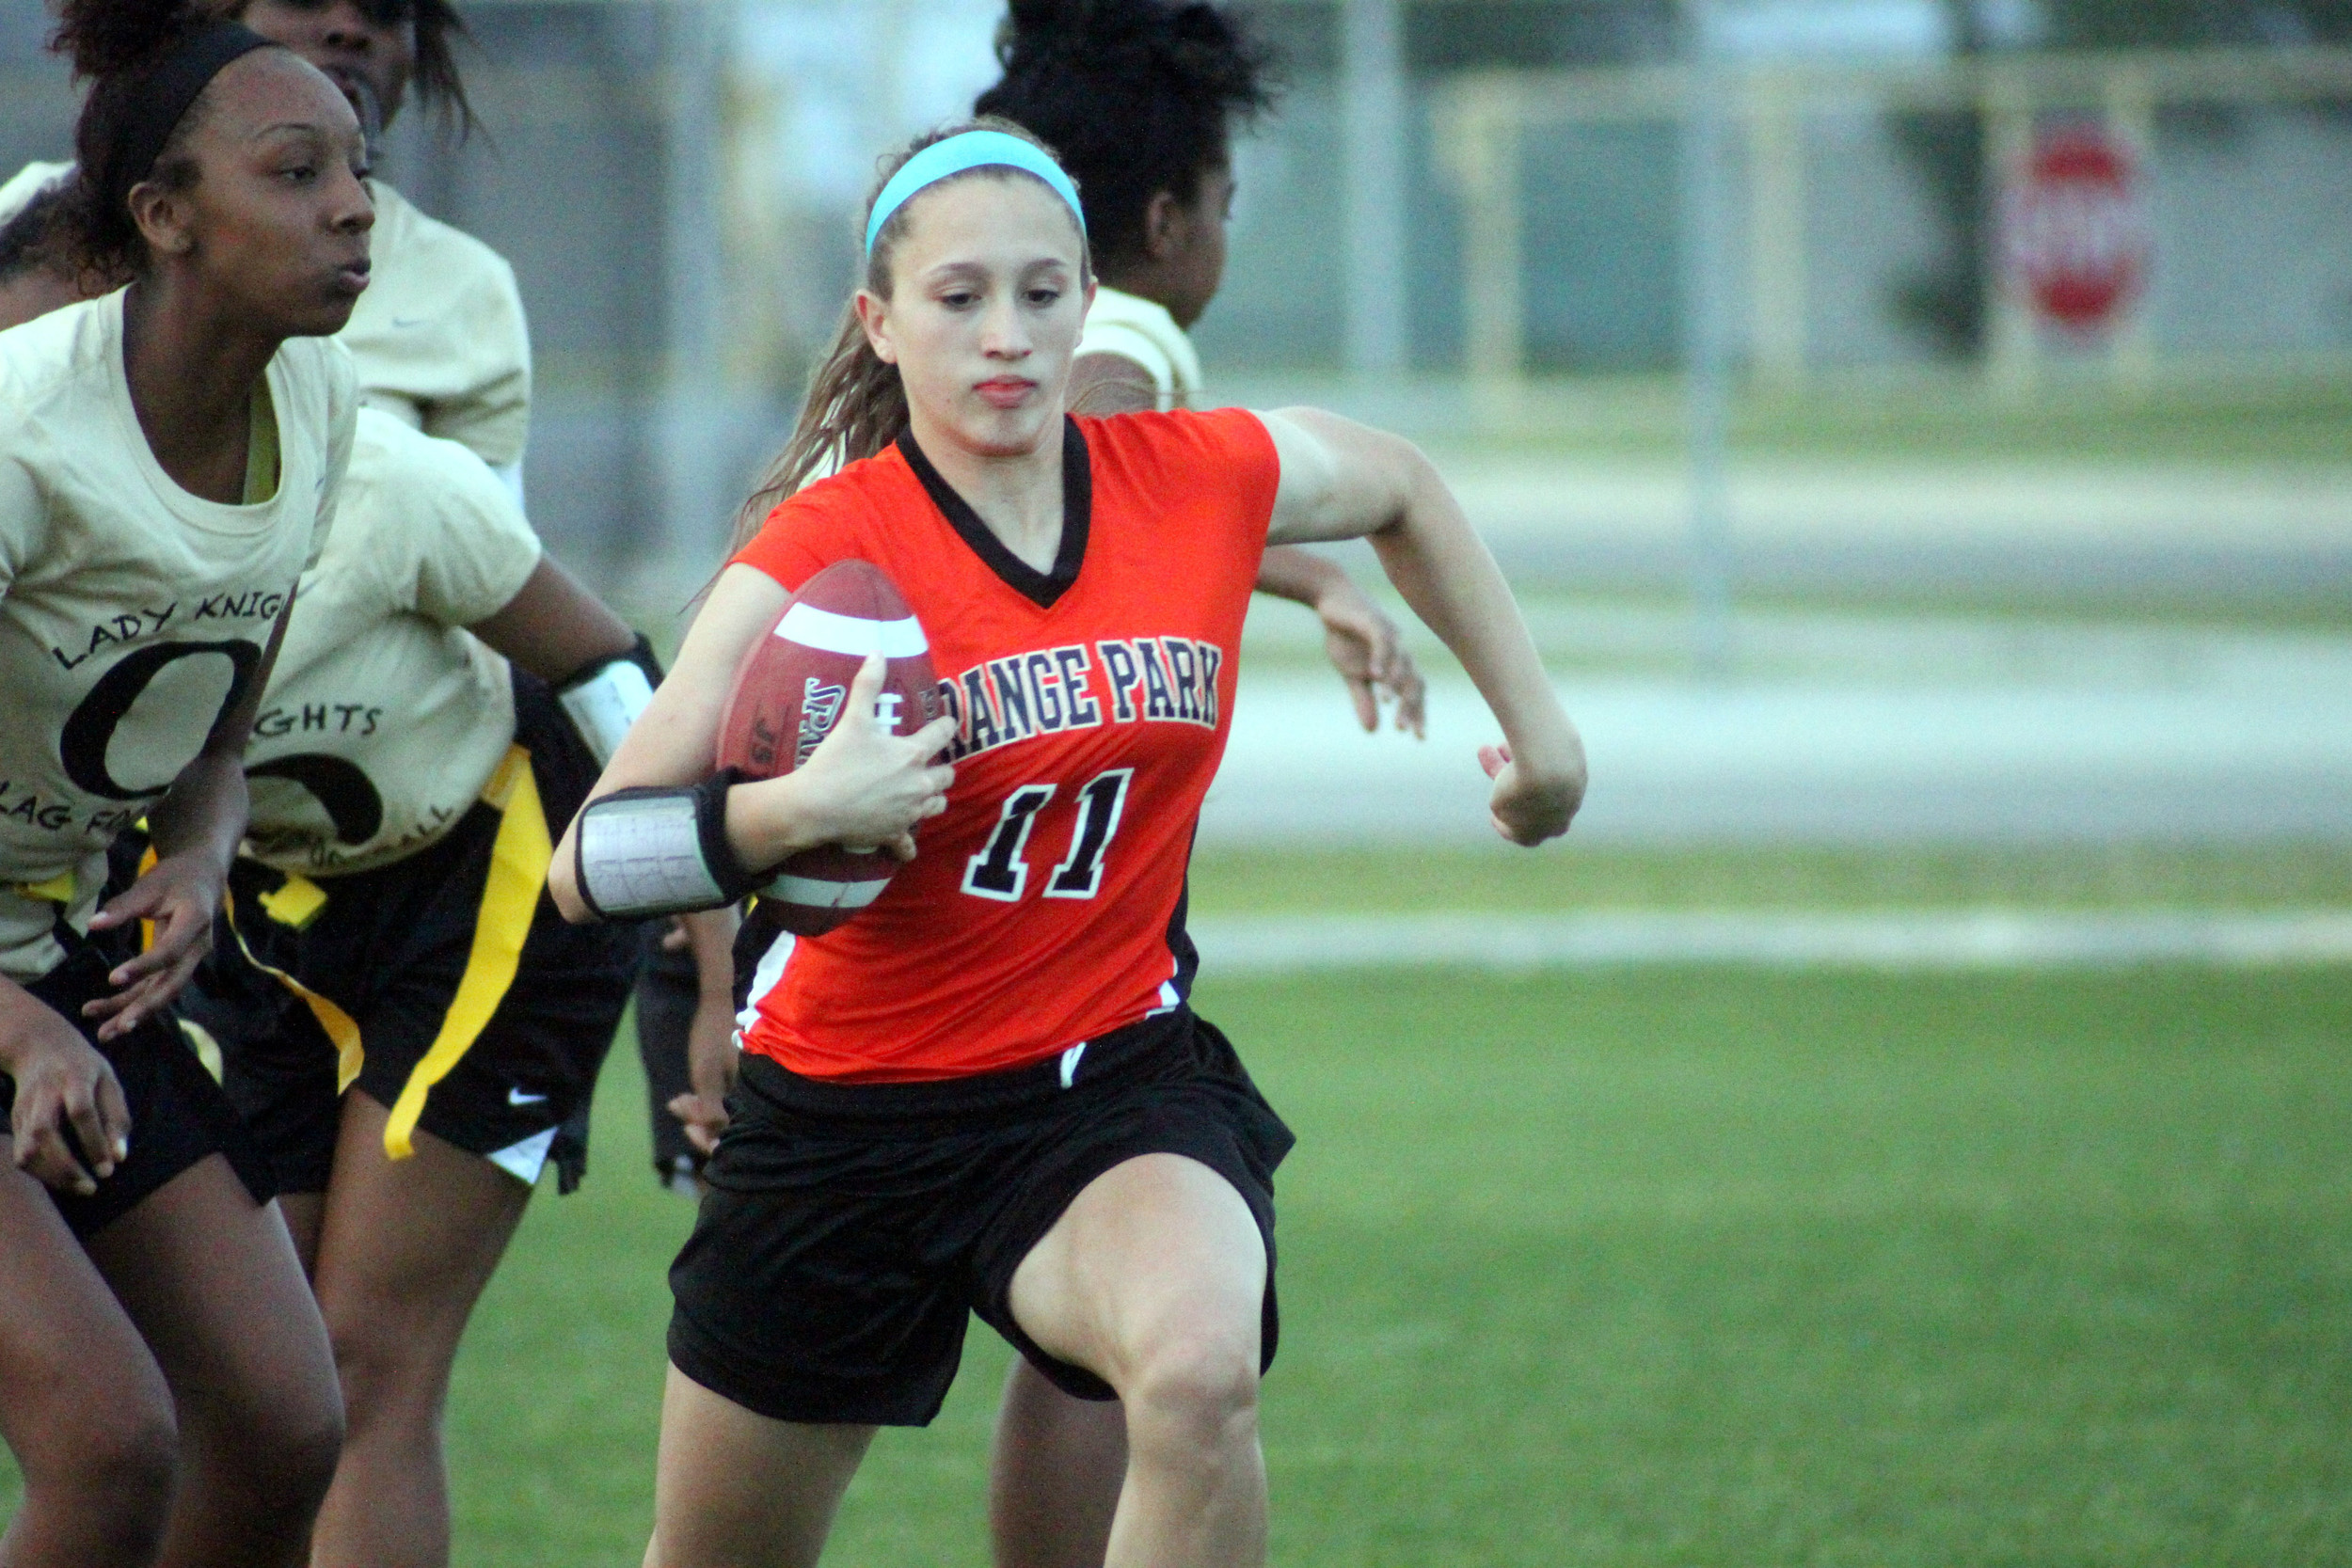 Orange Park flag football ballcarrier Angie DeMichele and her Lady Raiders lost an overtime game to Fleming Island that kept the Raiders from advancing into the state playoffs. Fleming Island lost to FAMU in the state quarterfinals.